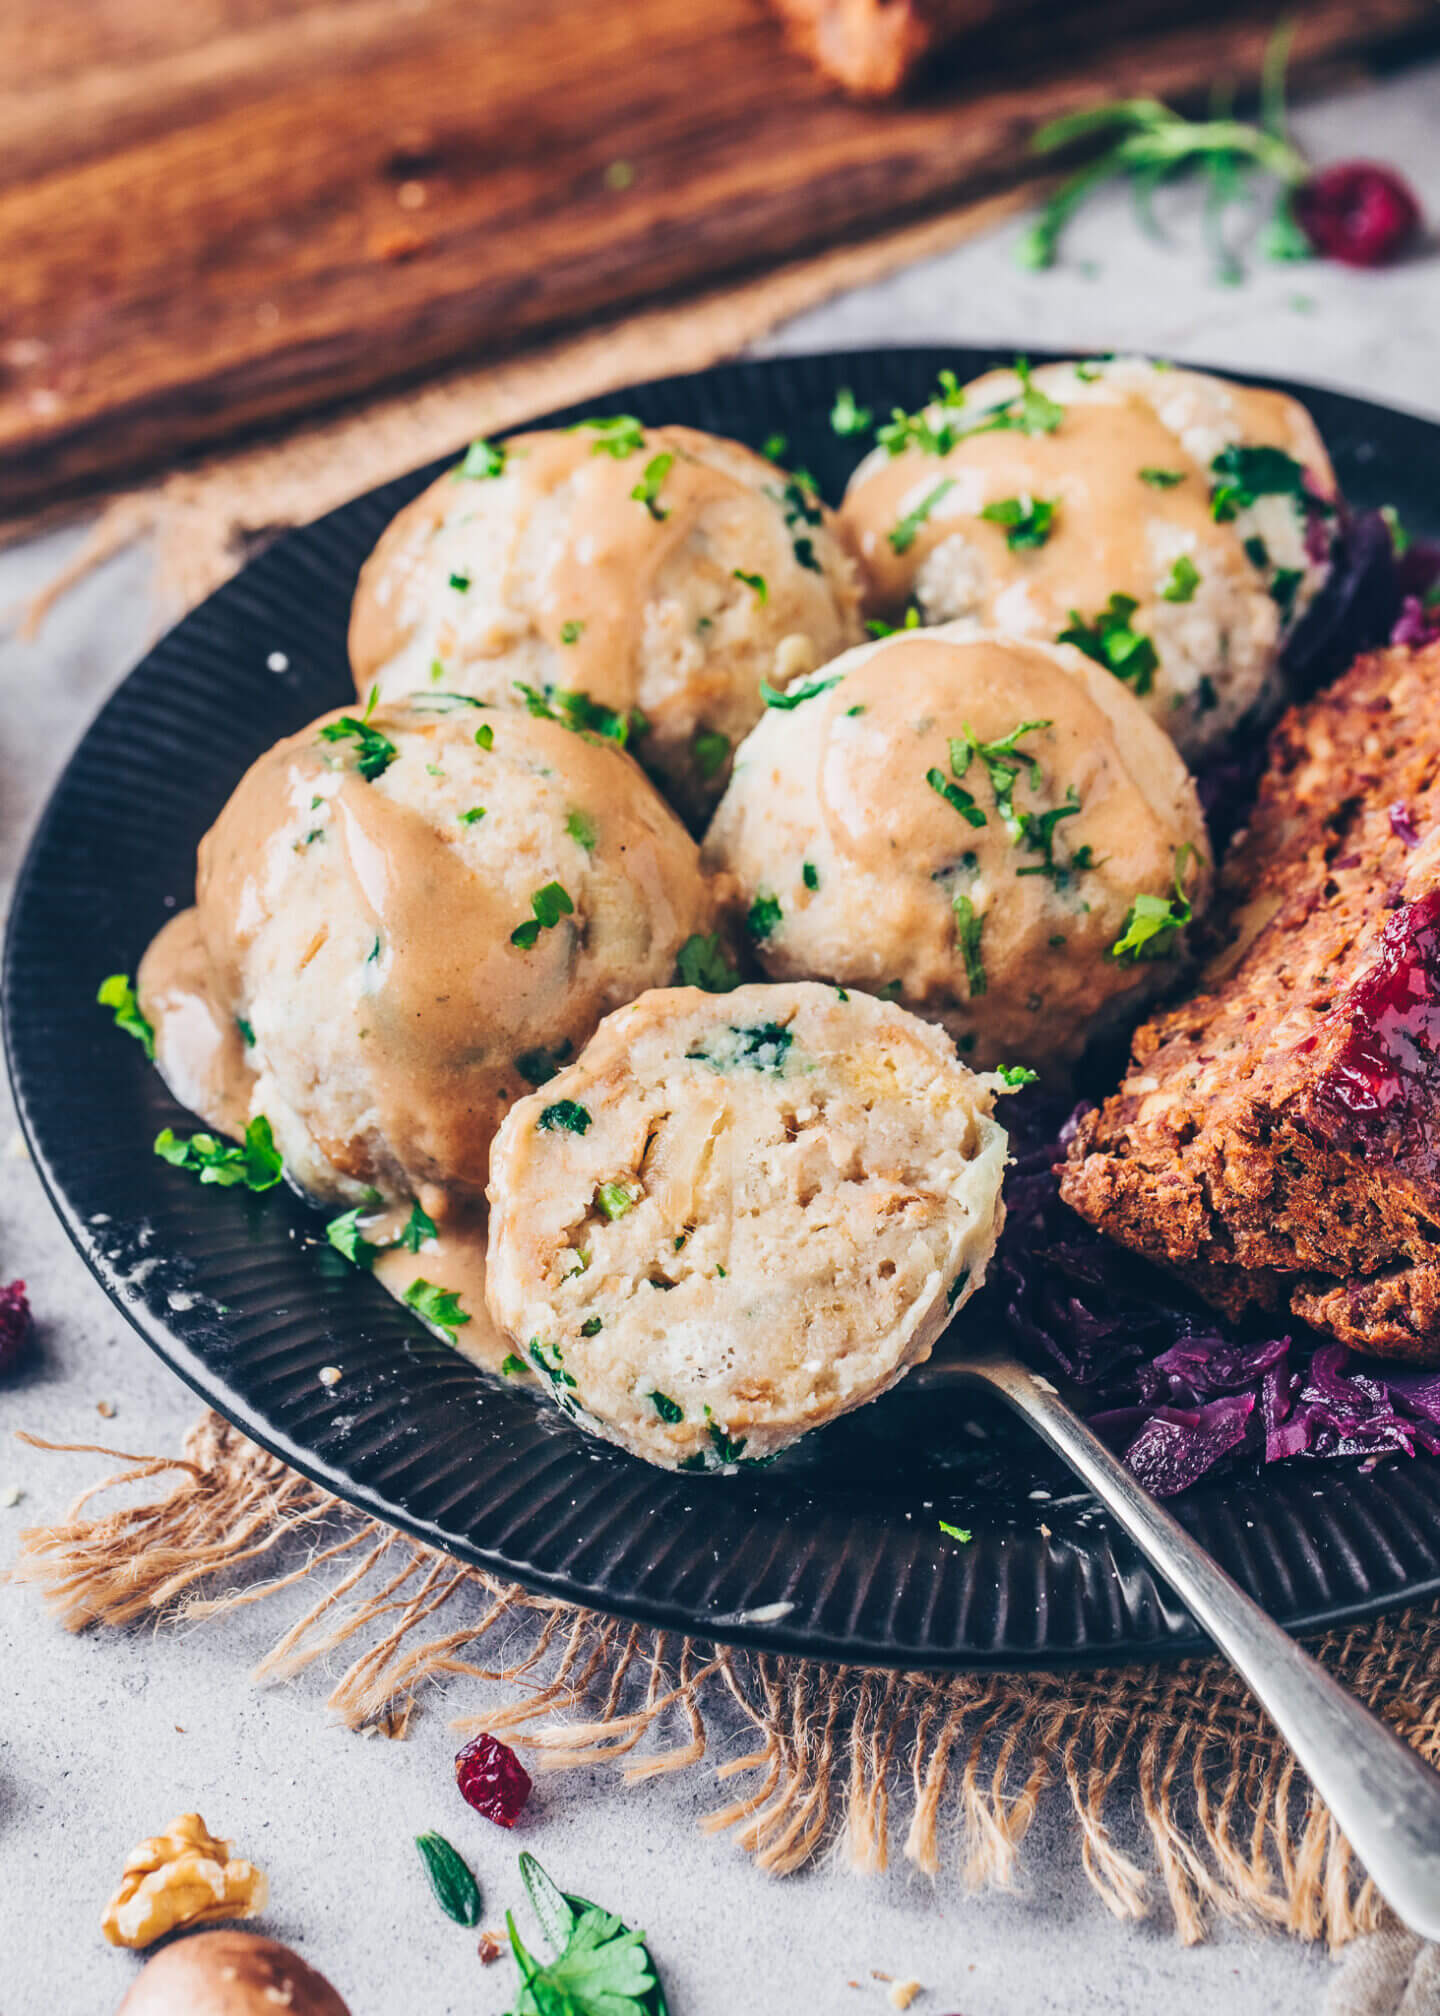 Vegan Bread Dumplings (German Semmelknoedel)